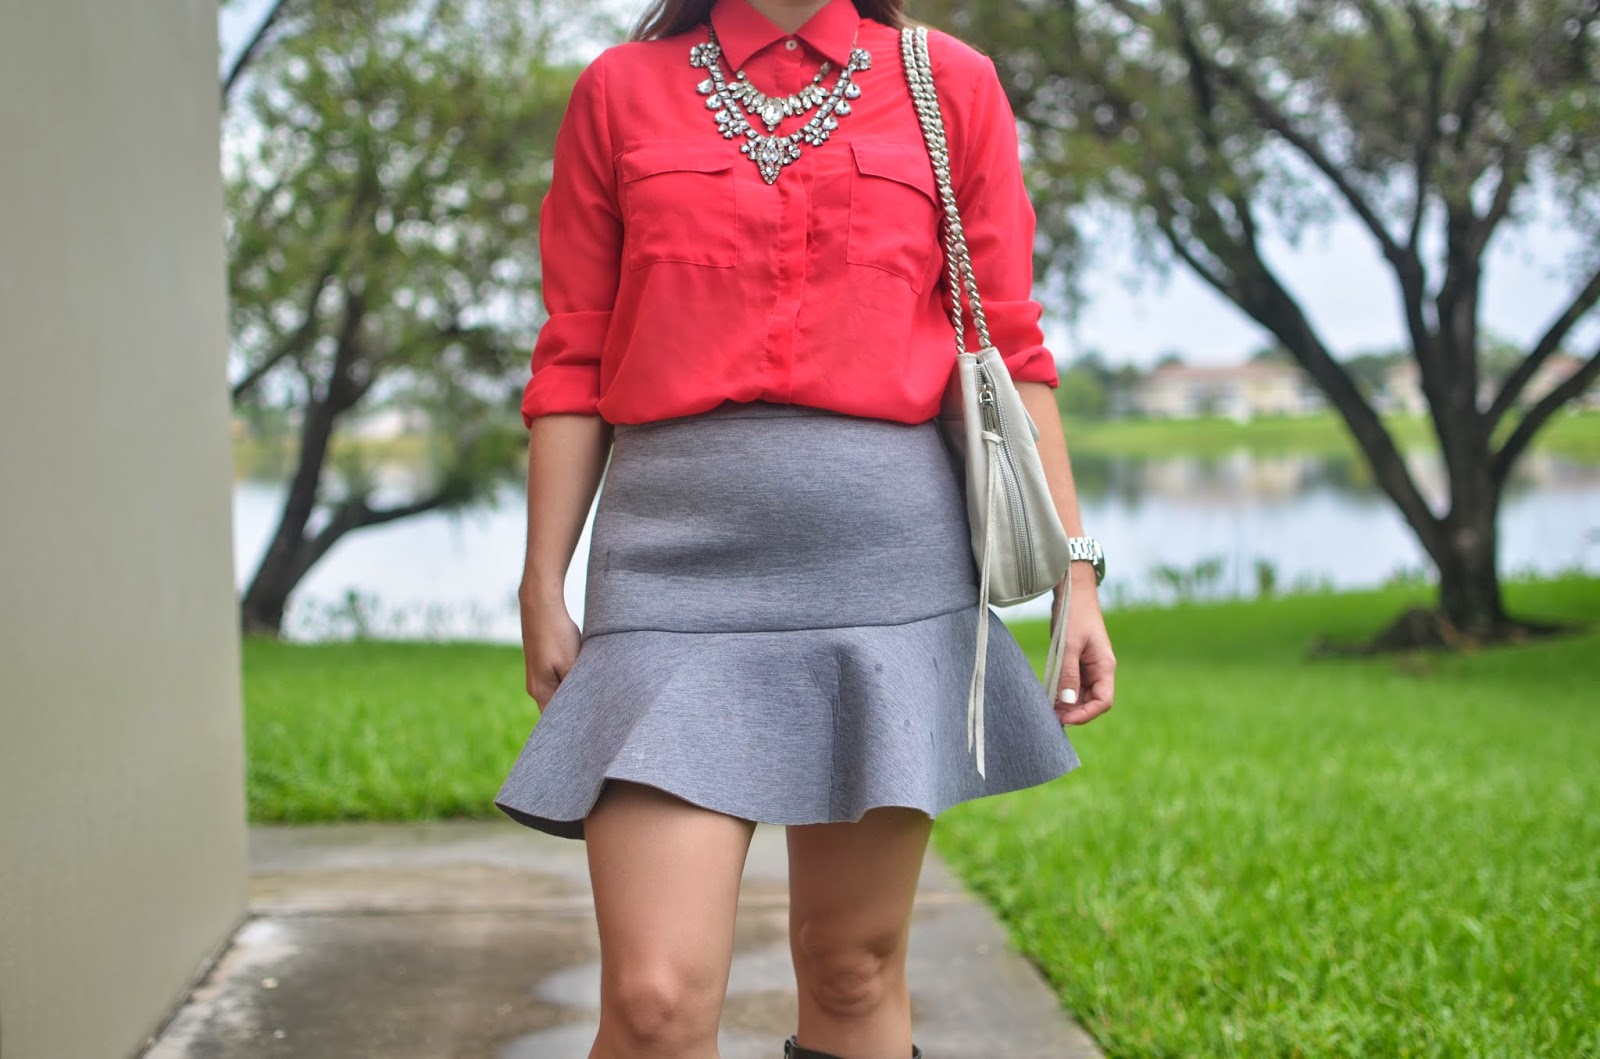 Gray flute skirt - pink chiffon top - gray boots - white bag